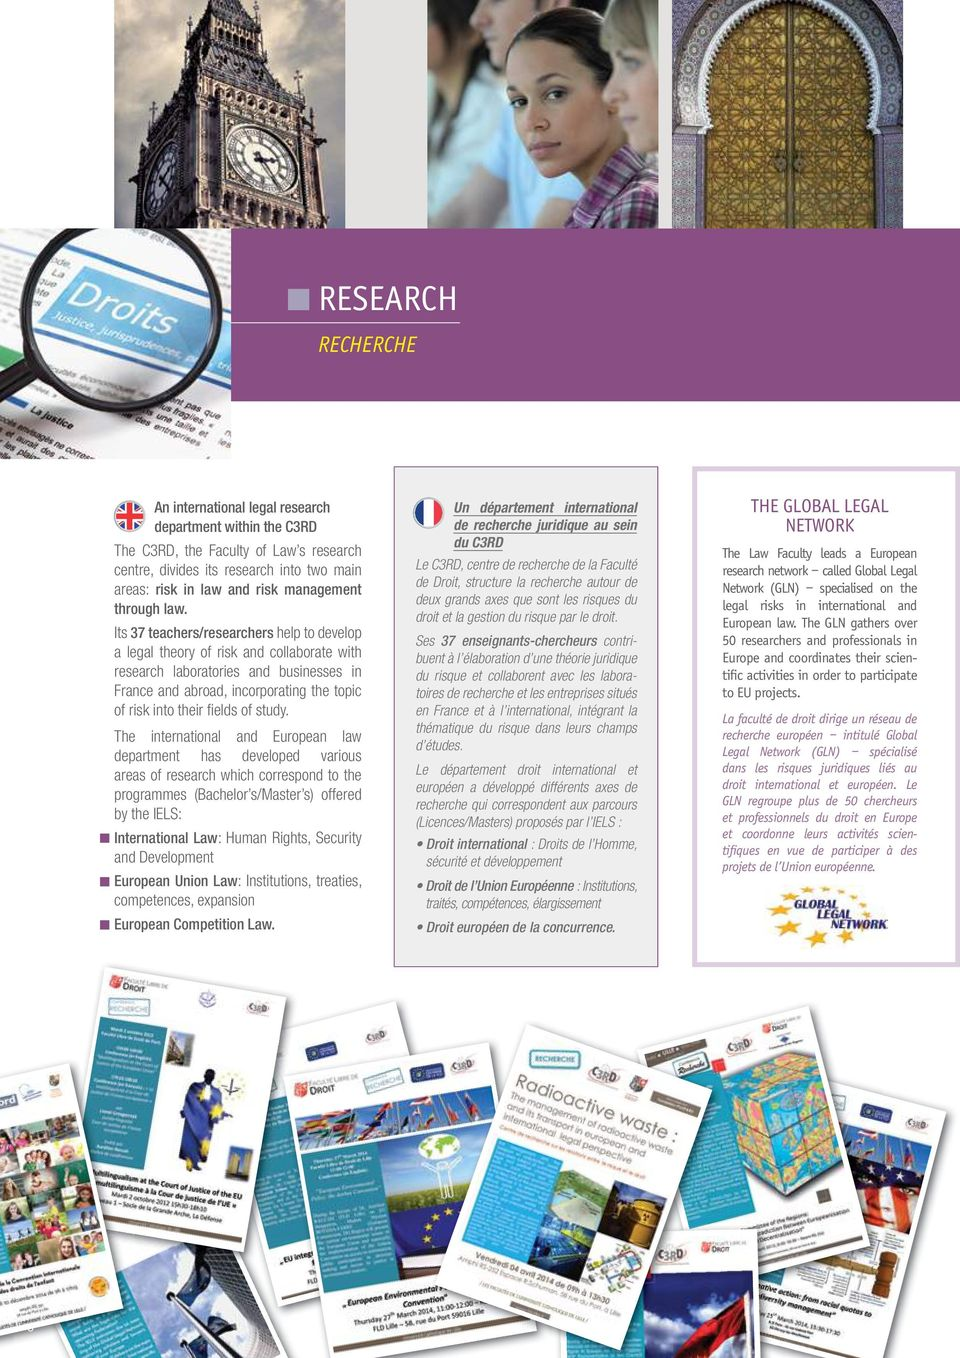 Its 37 teachers/researchers help to develop a legal theory of risk and collaborate with research laboratories and businesses in France and abroad, incorporating the topic of risk into their fi elds